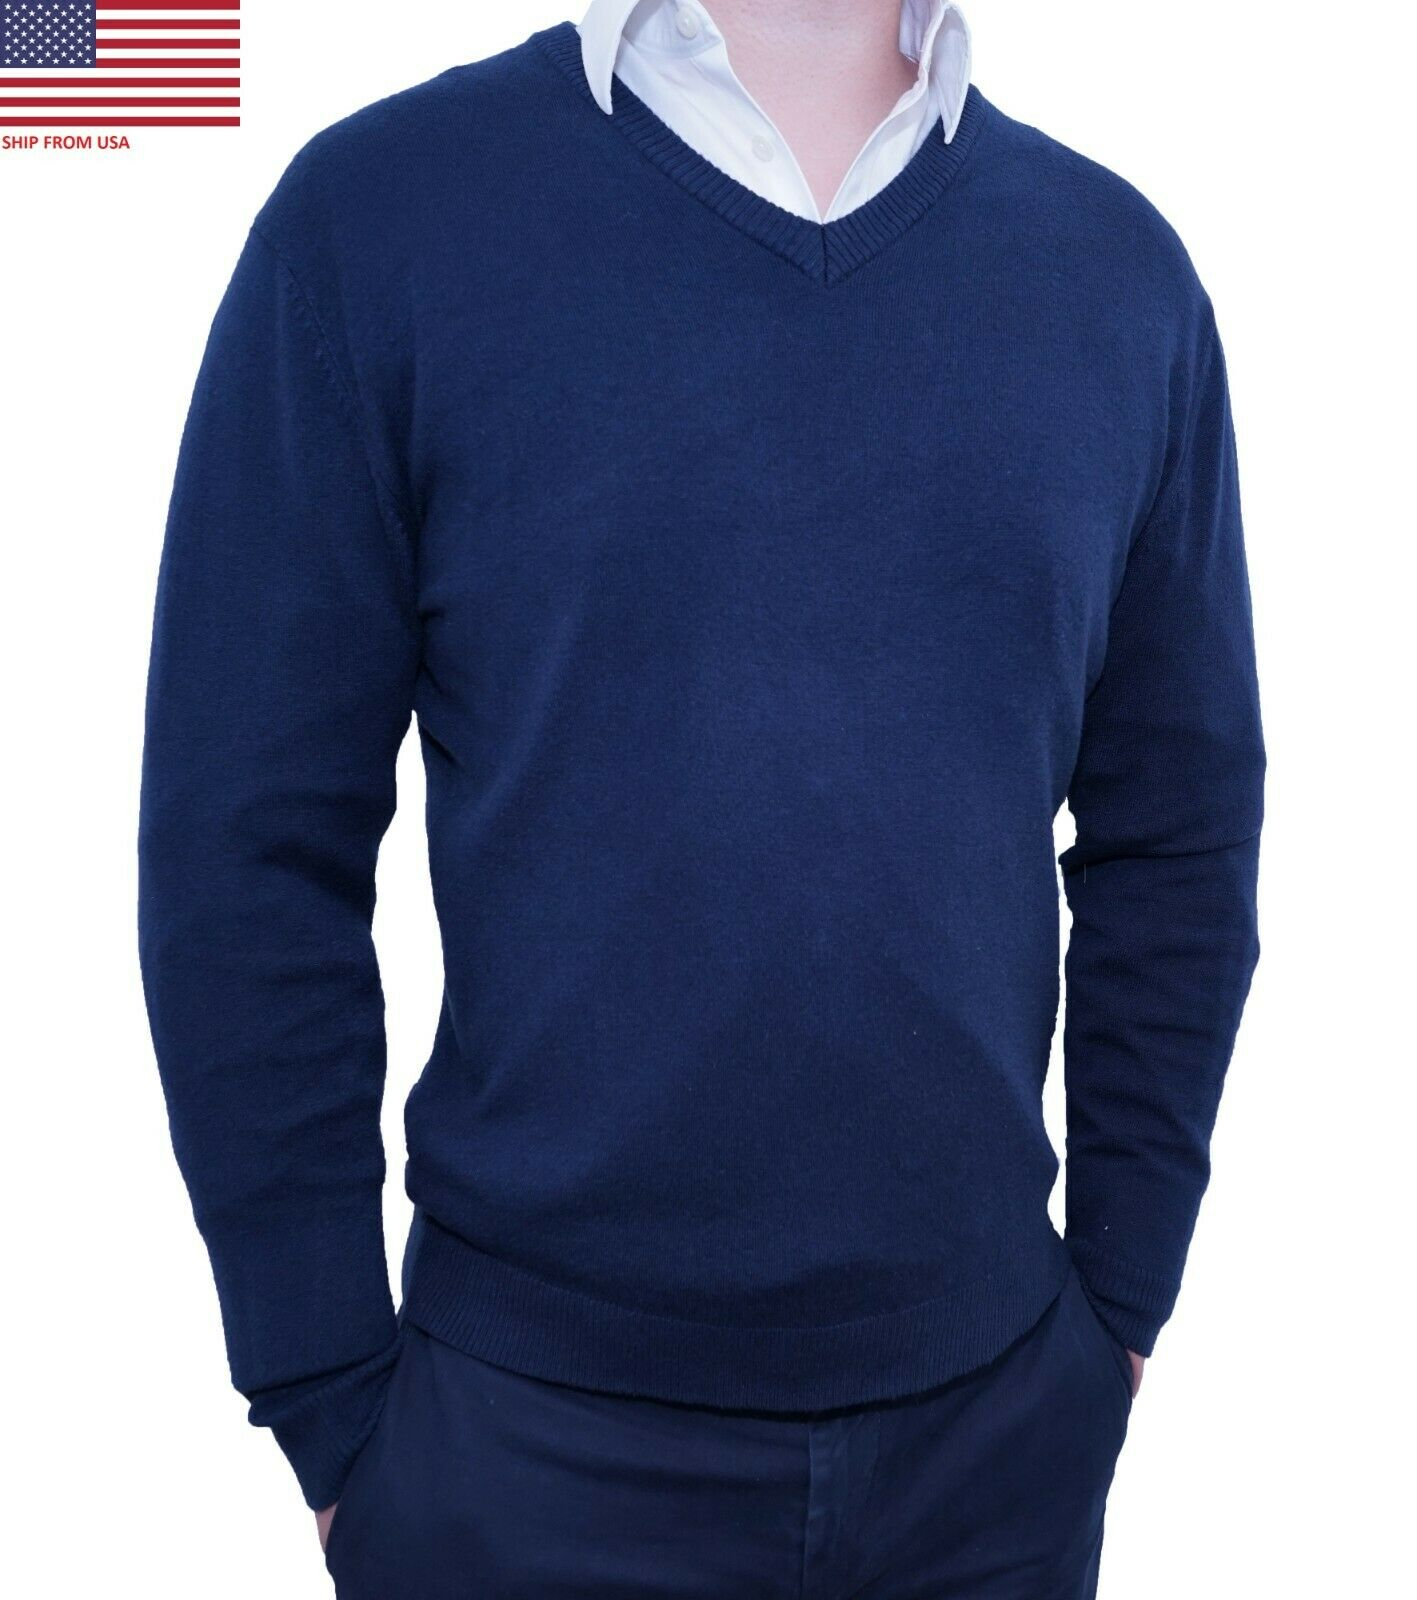 Men's Slim Fit Pullover Sweater Tops Knitted Long Sleeve Business Casual Sweater